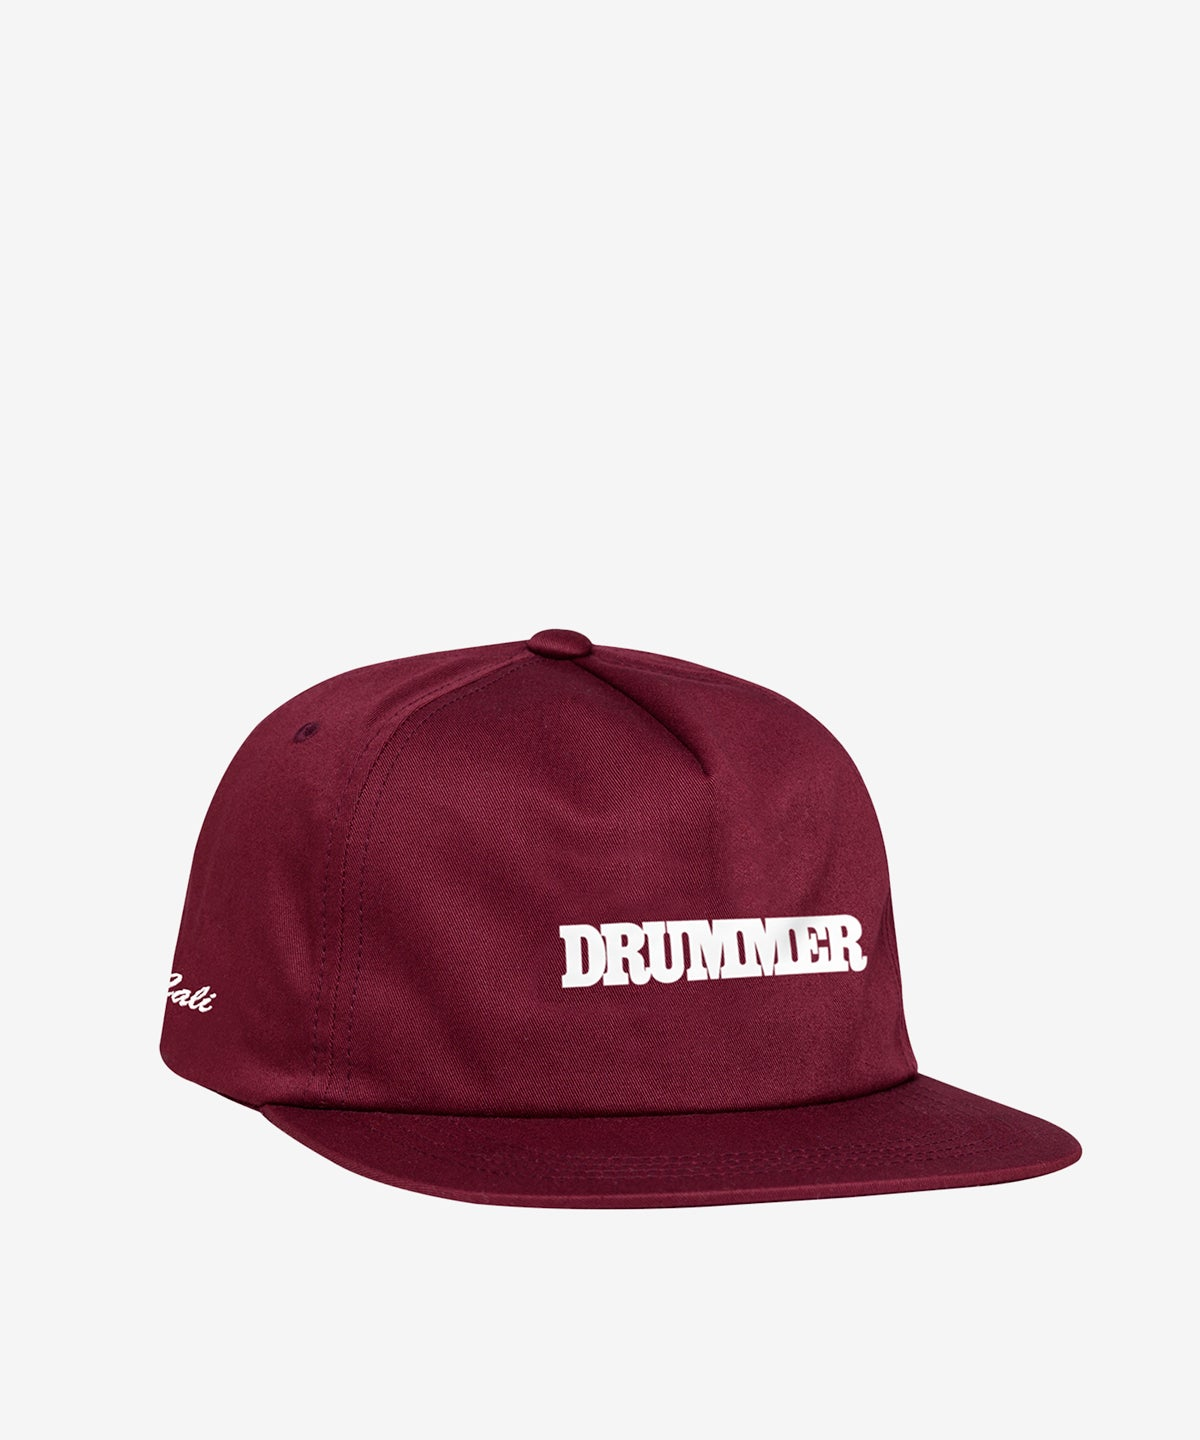 Image of BOYS OF SUMMER_DRUMMER (CALI) HAT